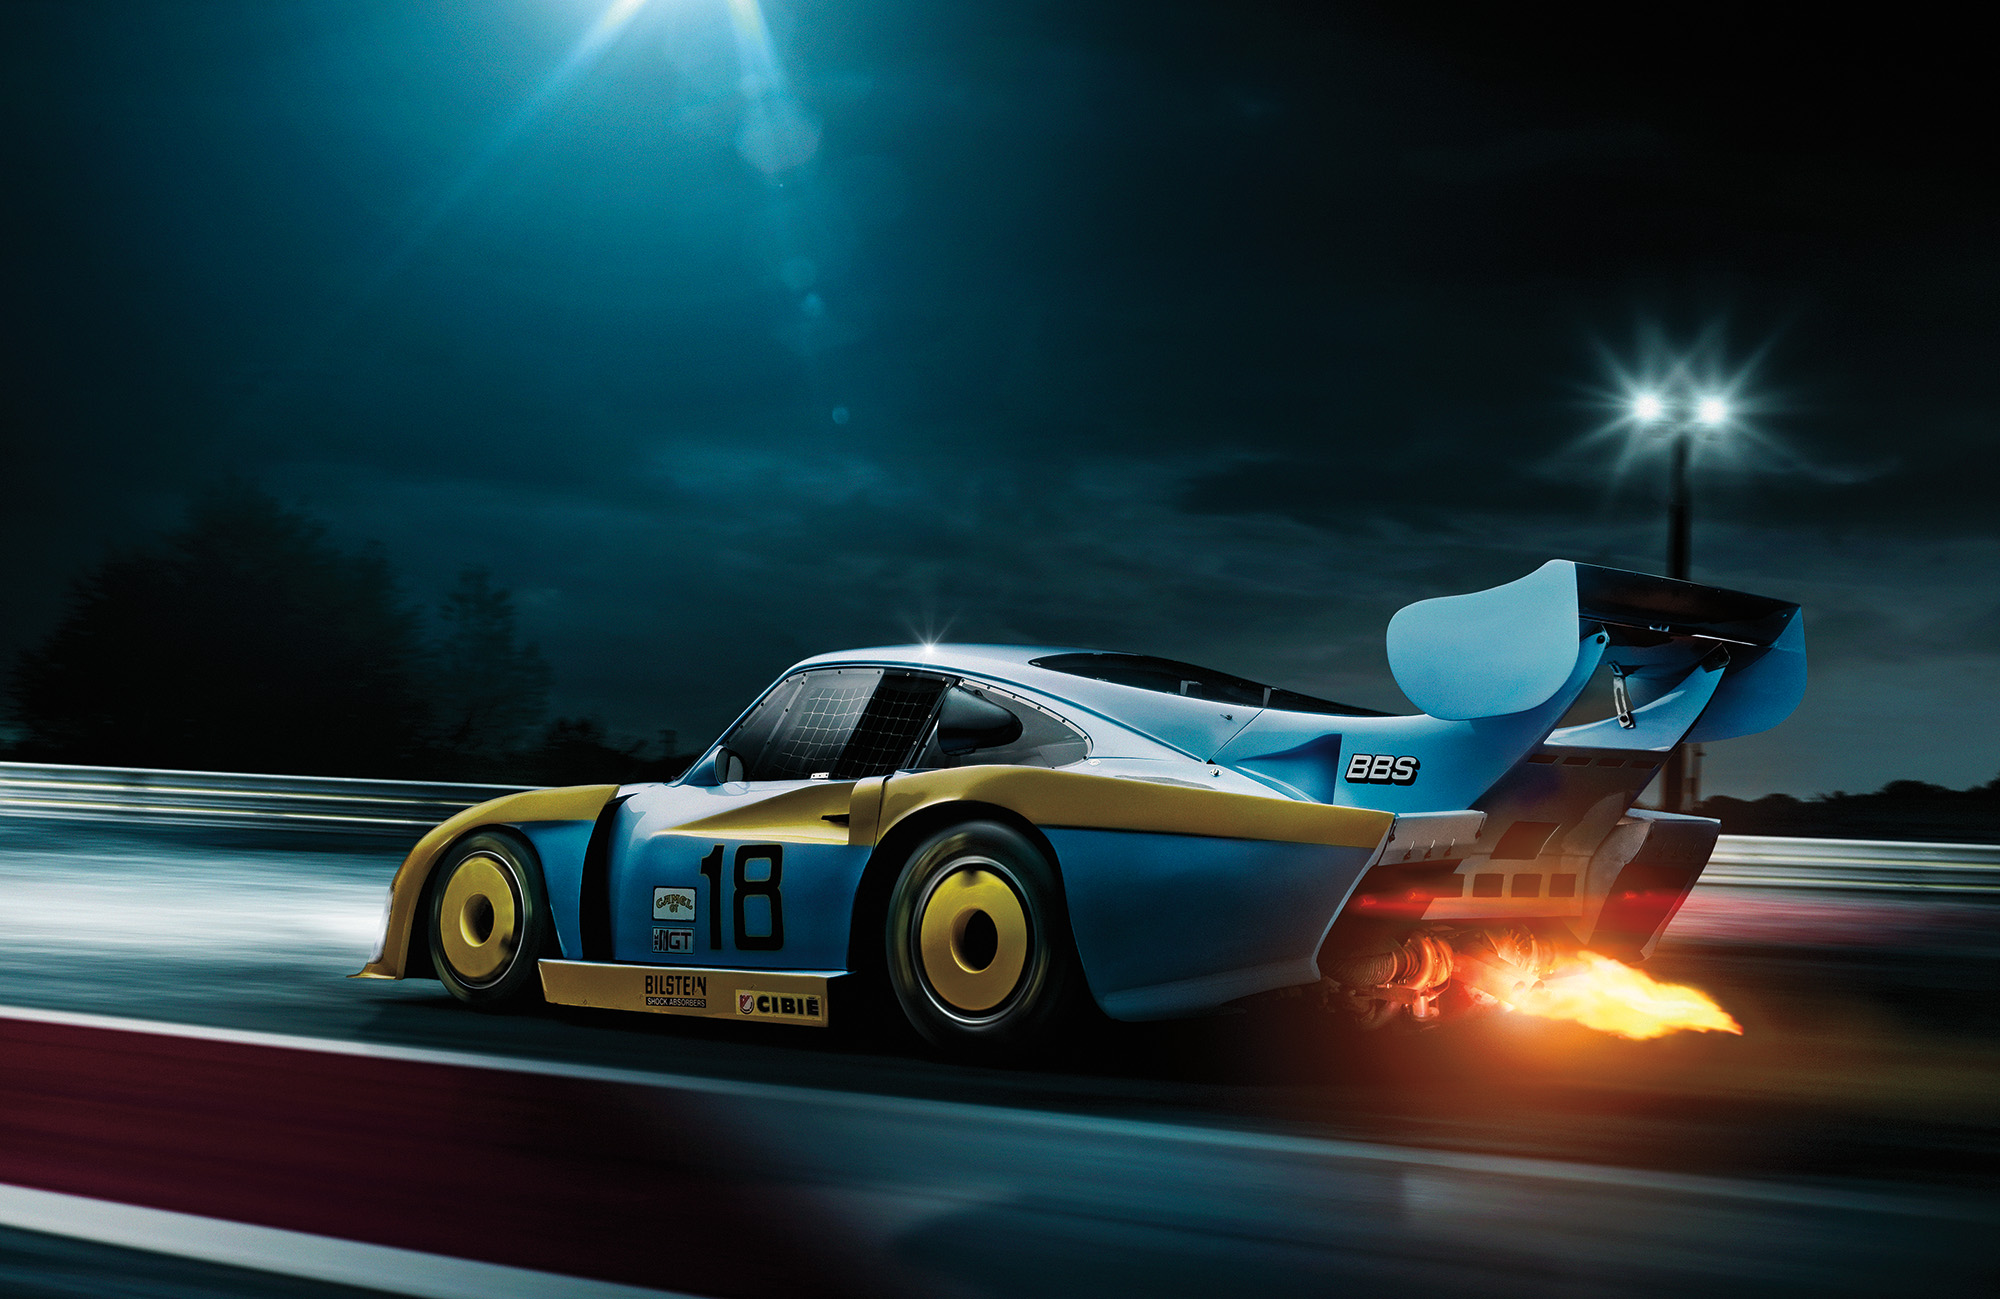 Automotive CGI photography by Blair Bunting